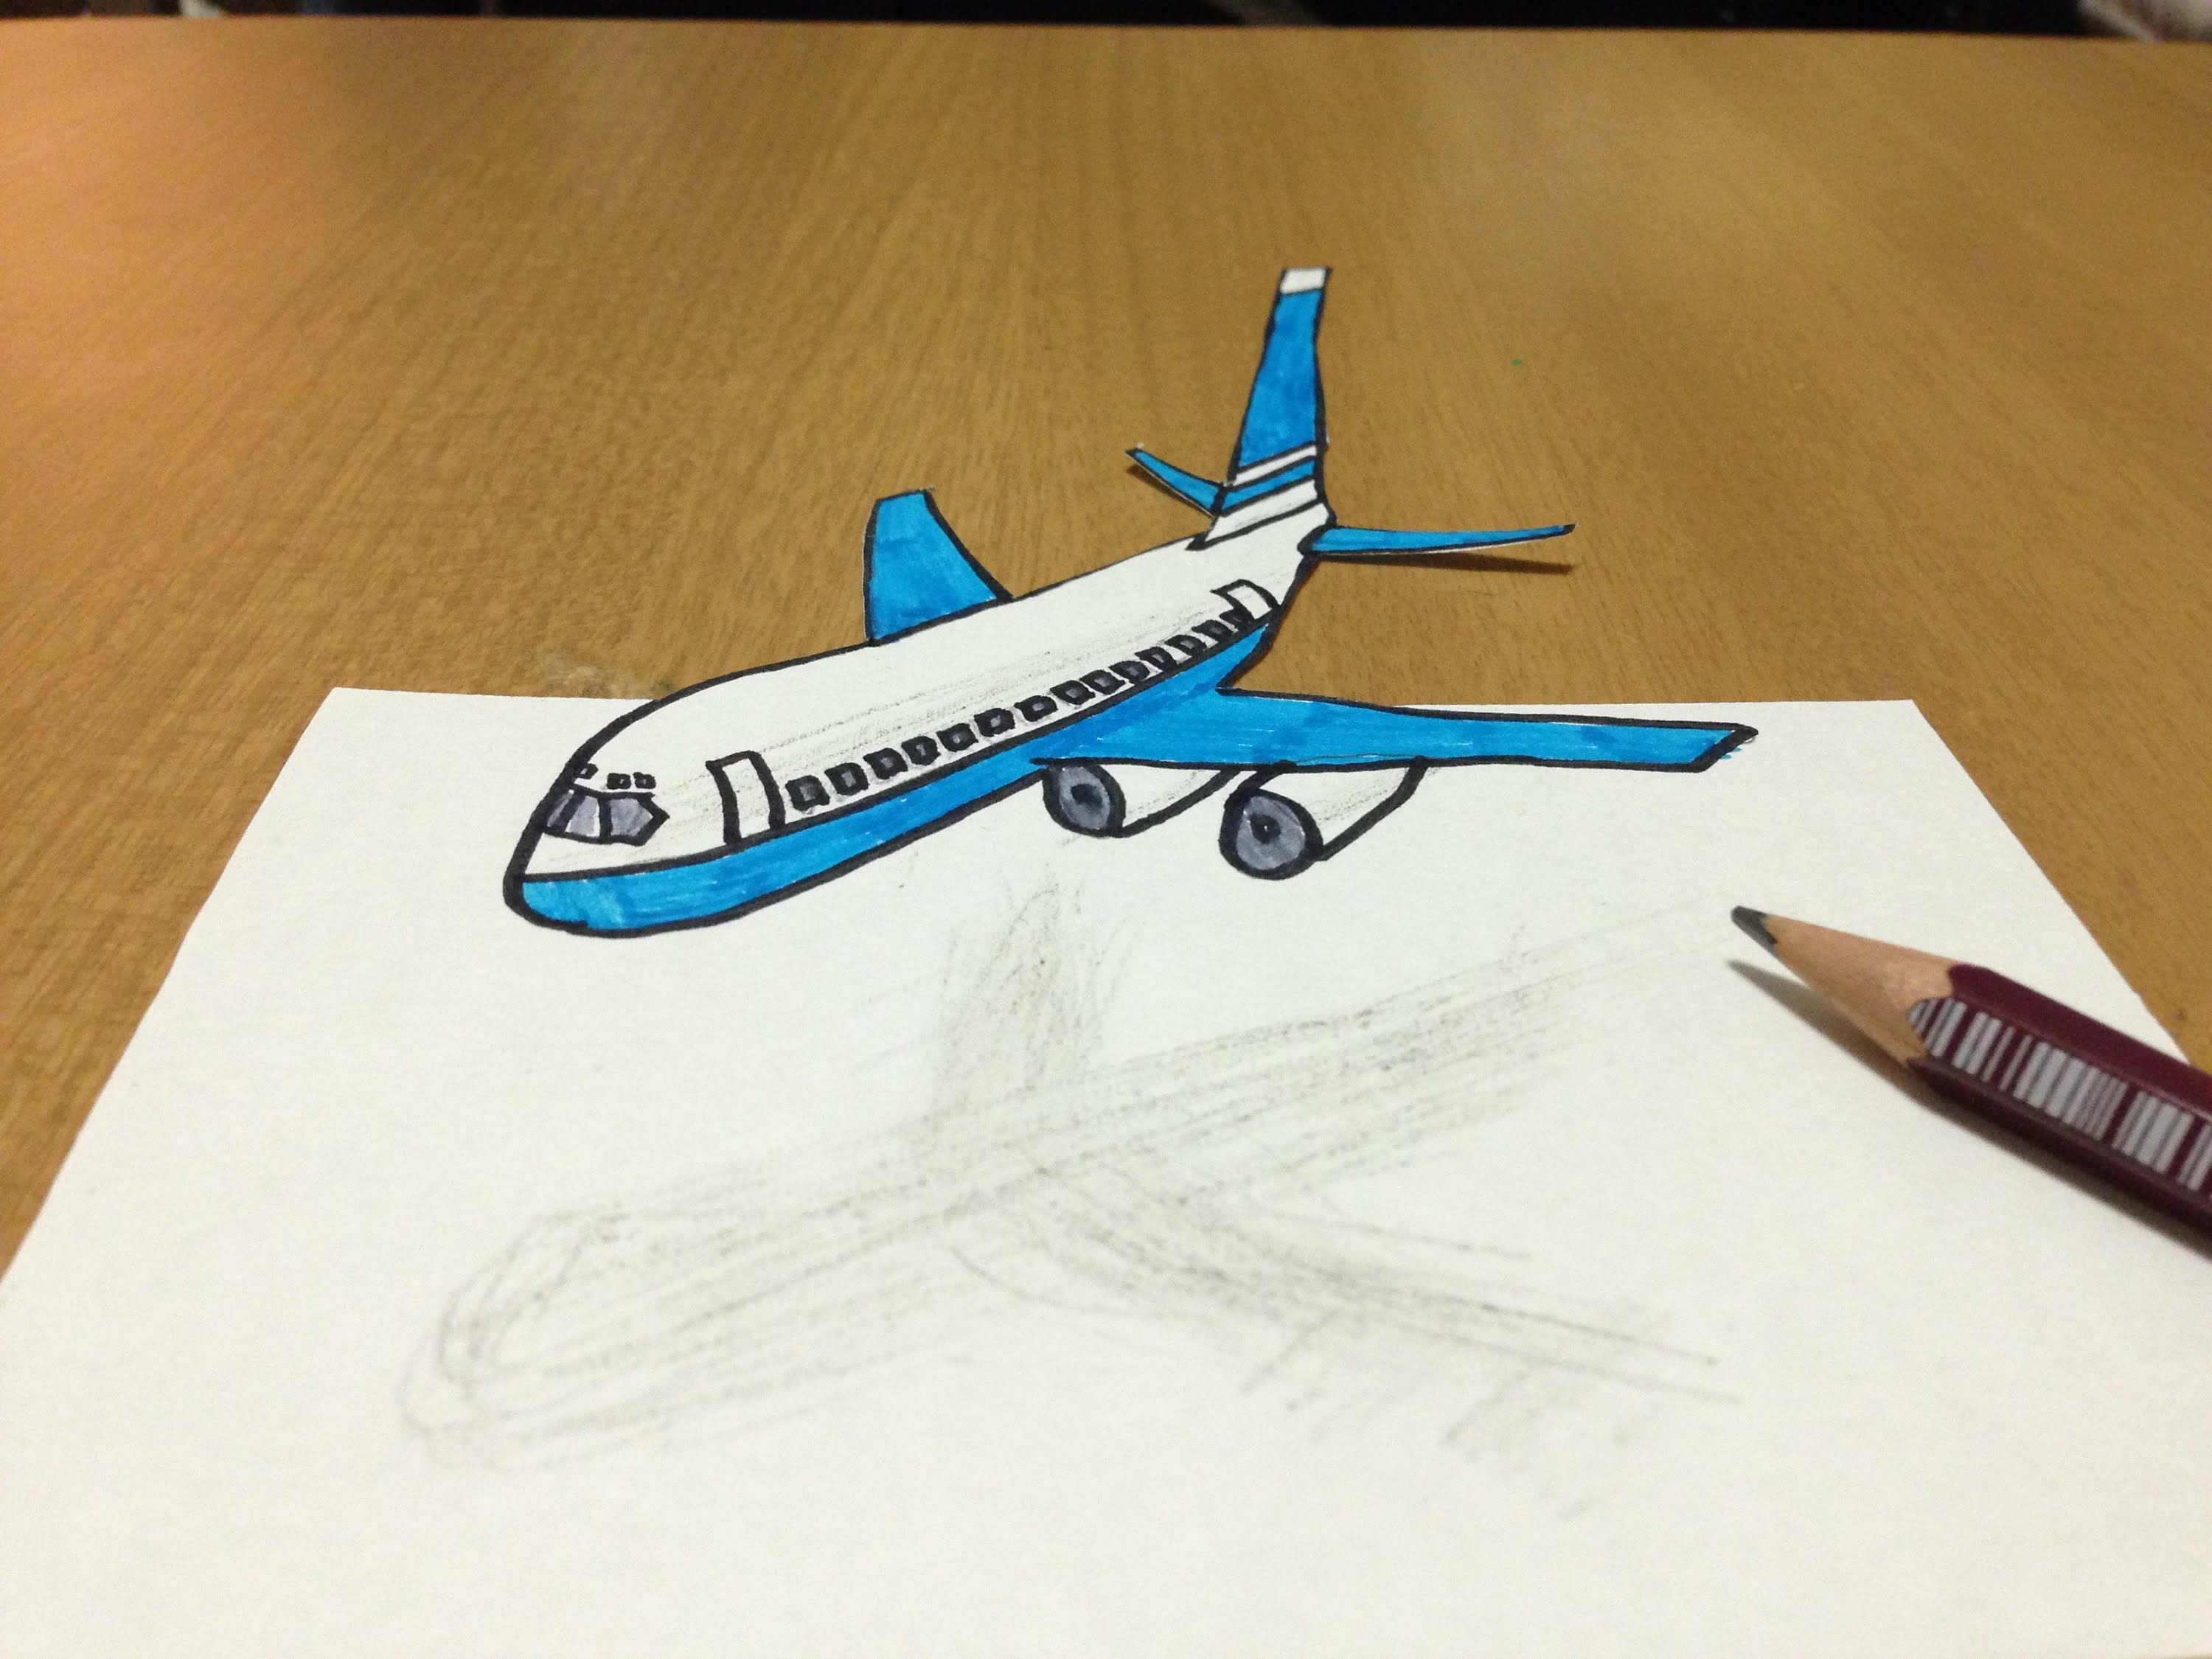 Drawn airplane airplane flying 3D Flying draw Anamorphic Art